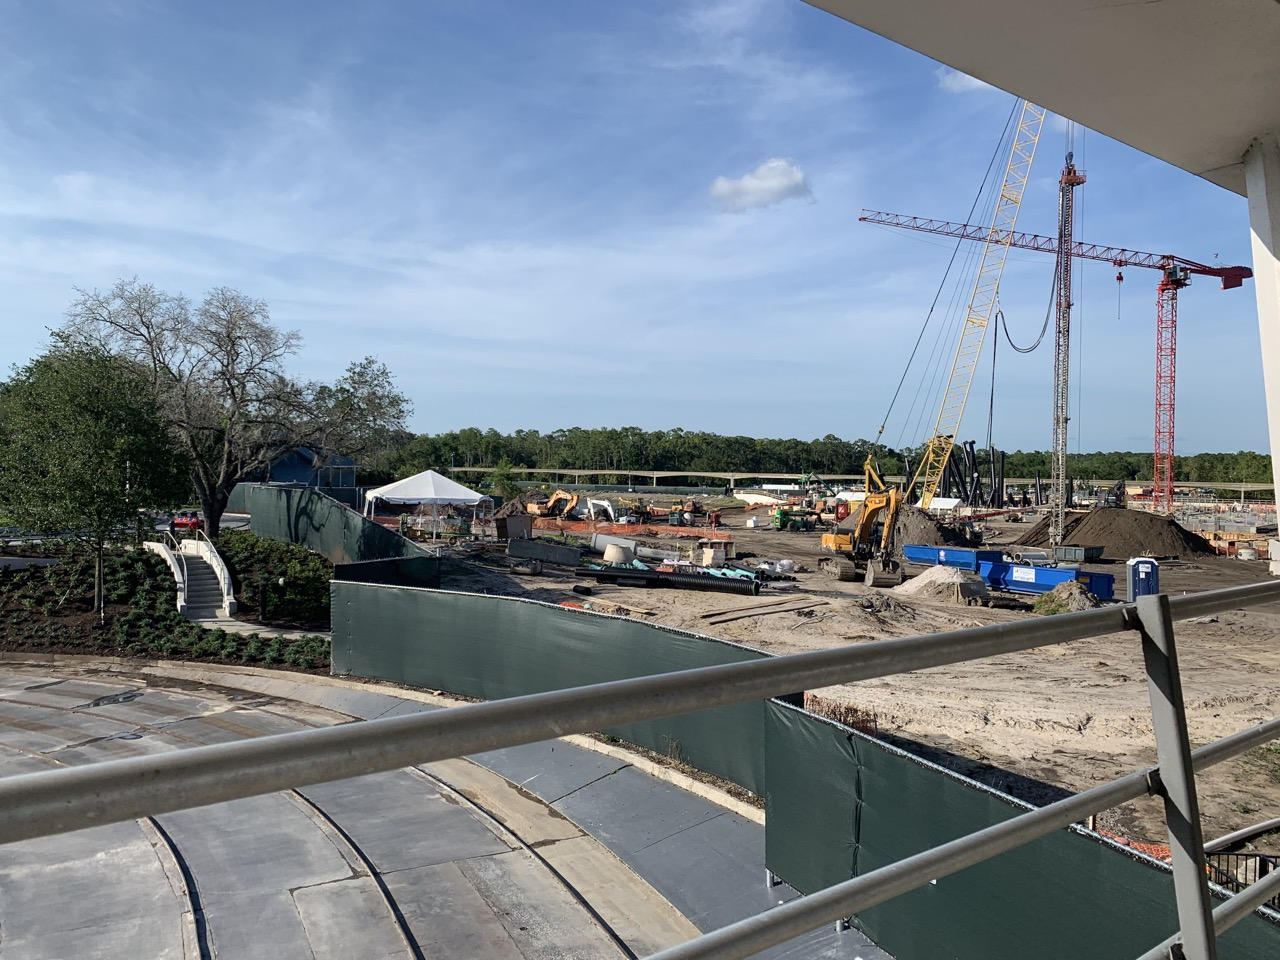 disney world trip report early summer 2019 day five construction 10.jpeg